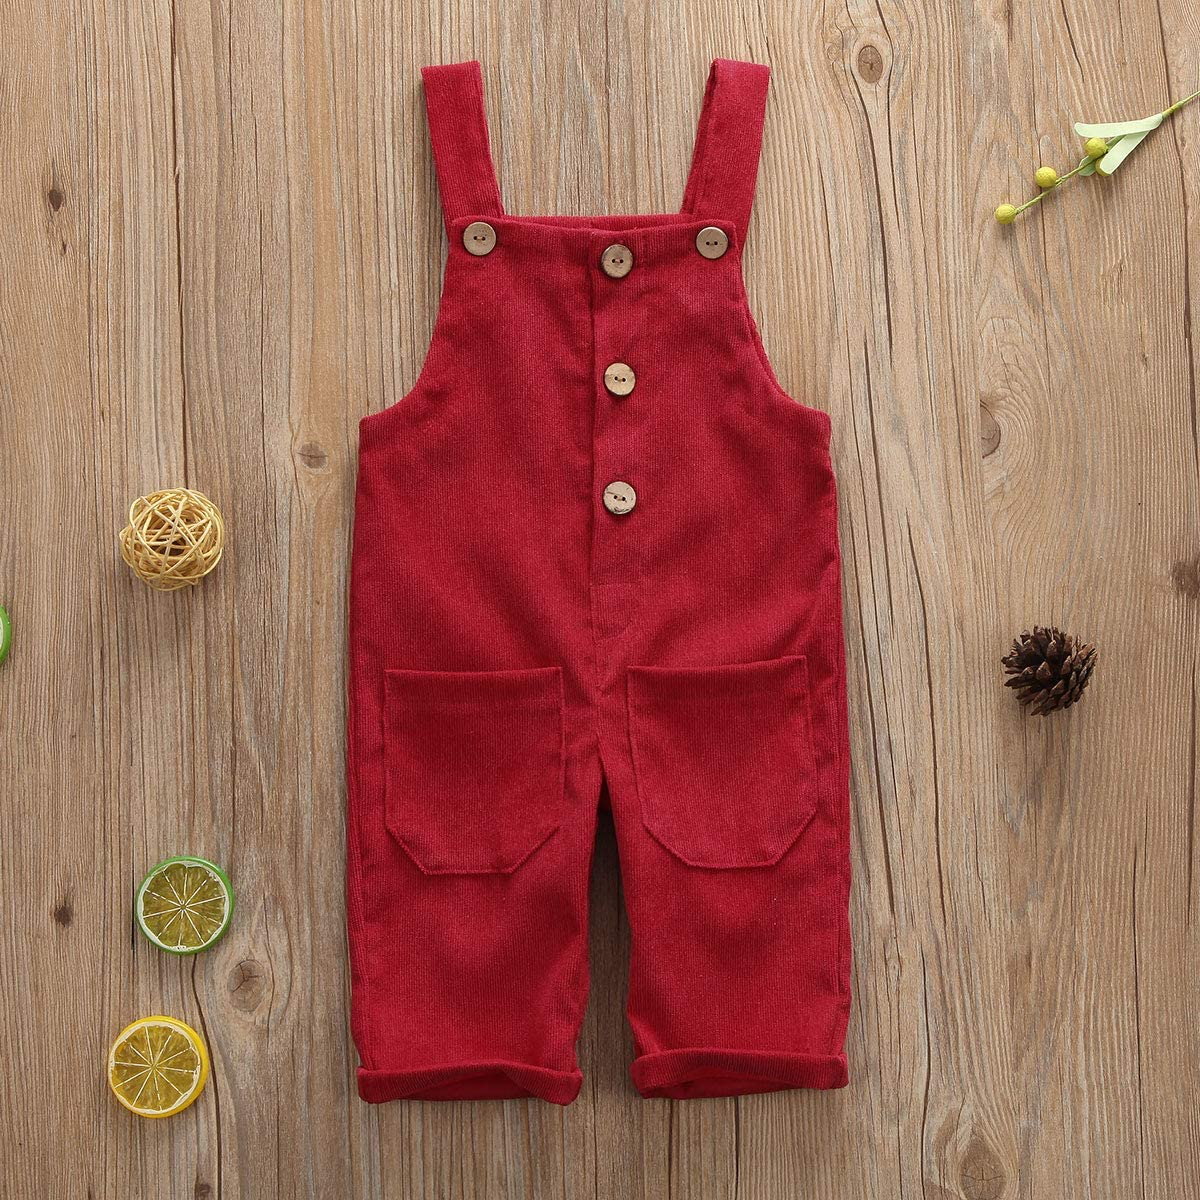 Greetuny Baby Girls Boys Unisex Velour Dungarees Braces Trousers for 6 Months 3 Years